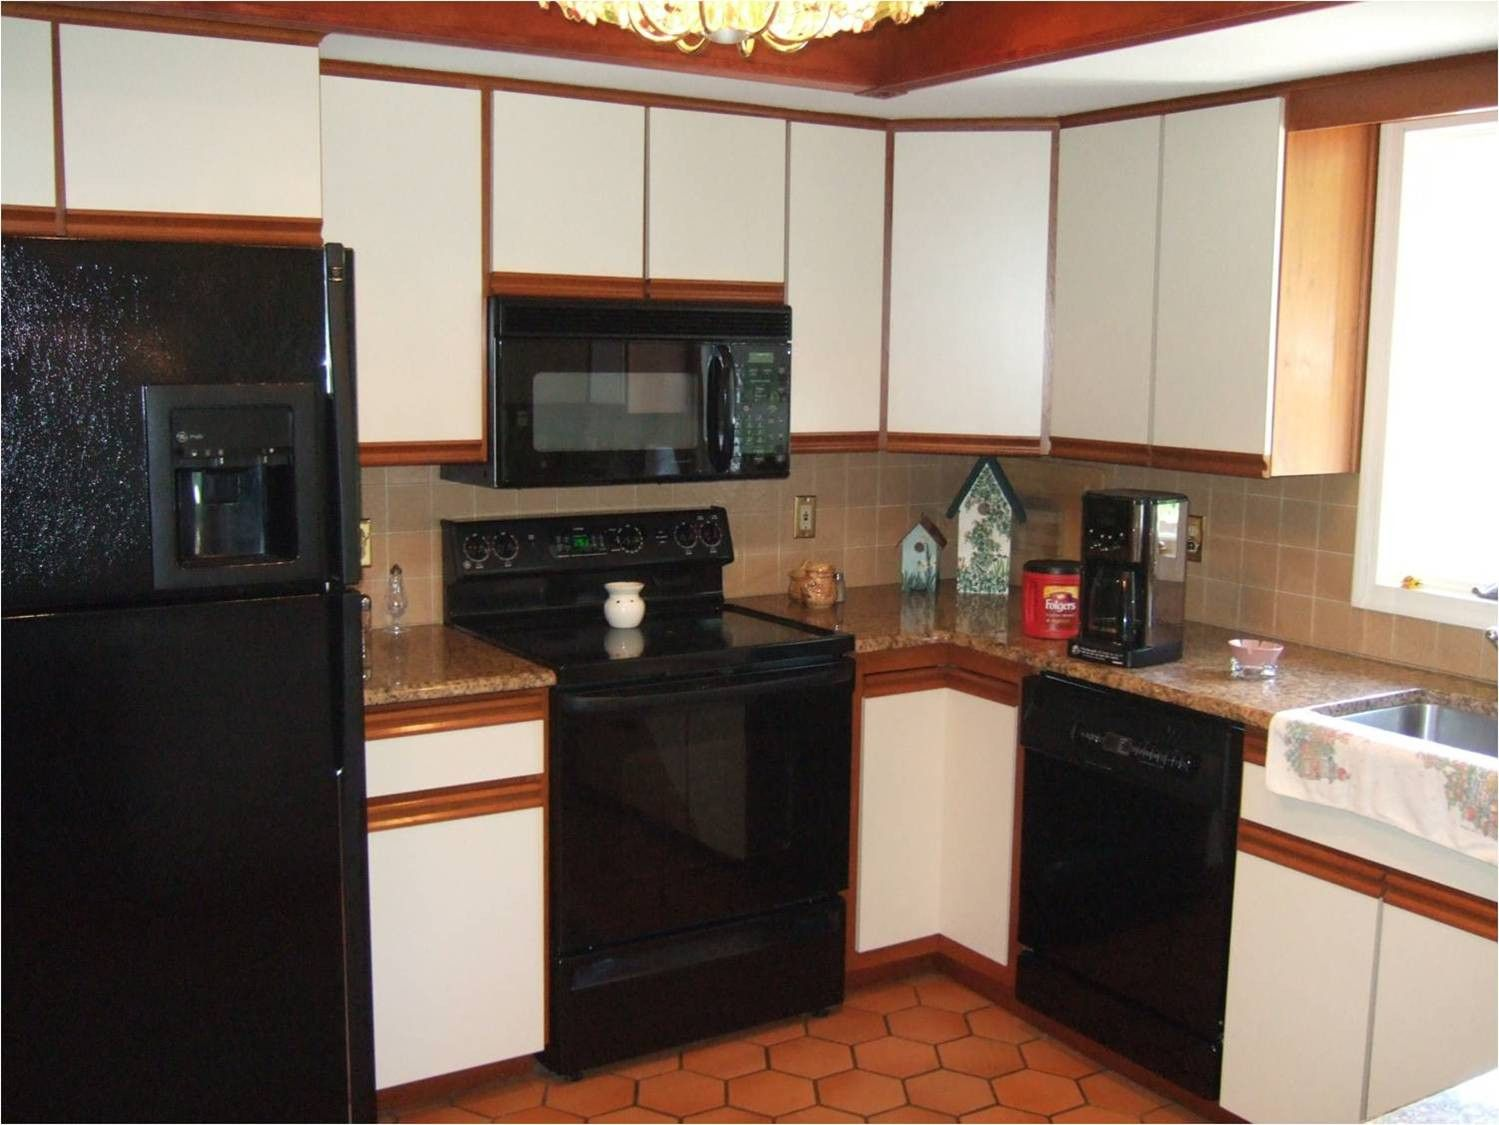 20 Home Depot Cabinet Installation Reviews Remodeling Ideas For Kitchens Check More At Http Kitchen Cabinets Prices Home Depot Kitchen Home Depot Cabinets